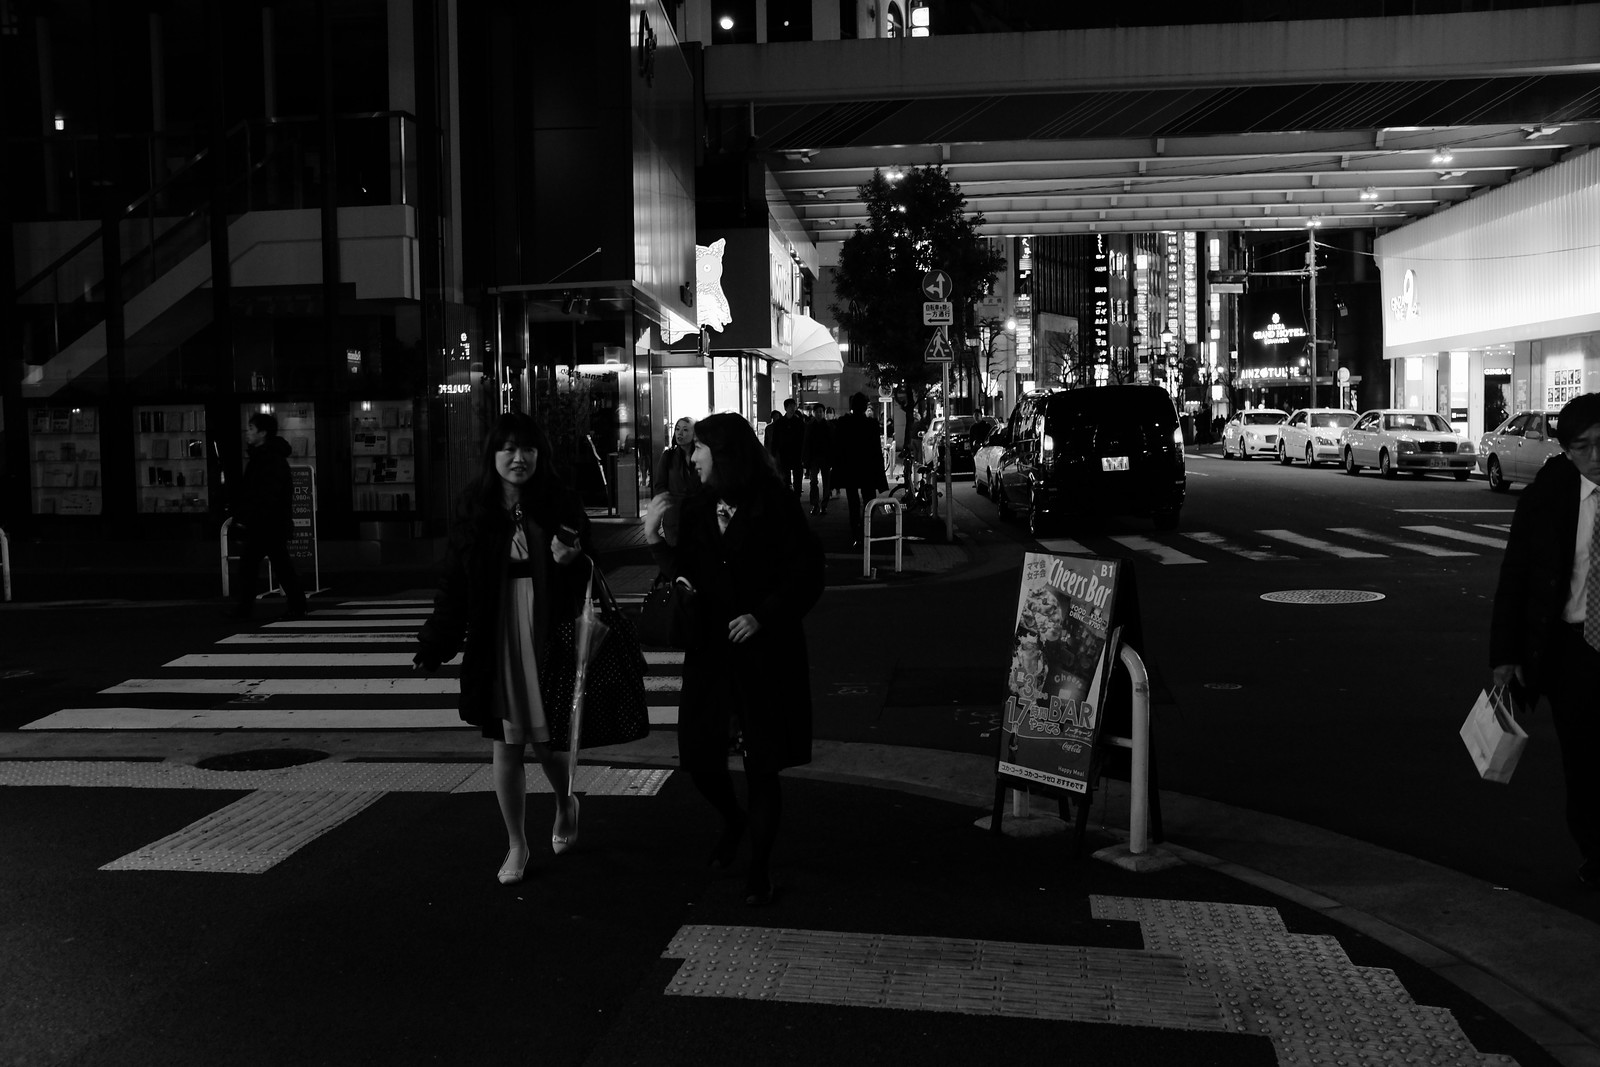 The Ginza Night of Tokyo, Japan.